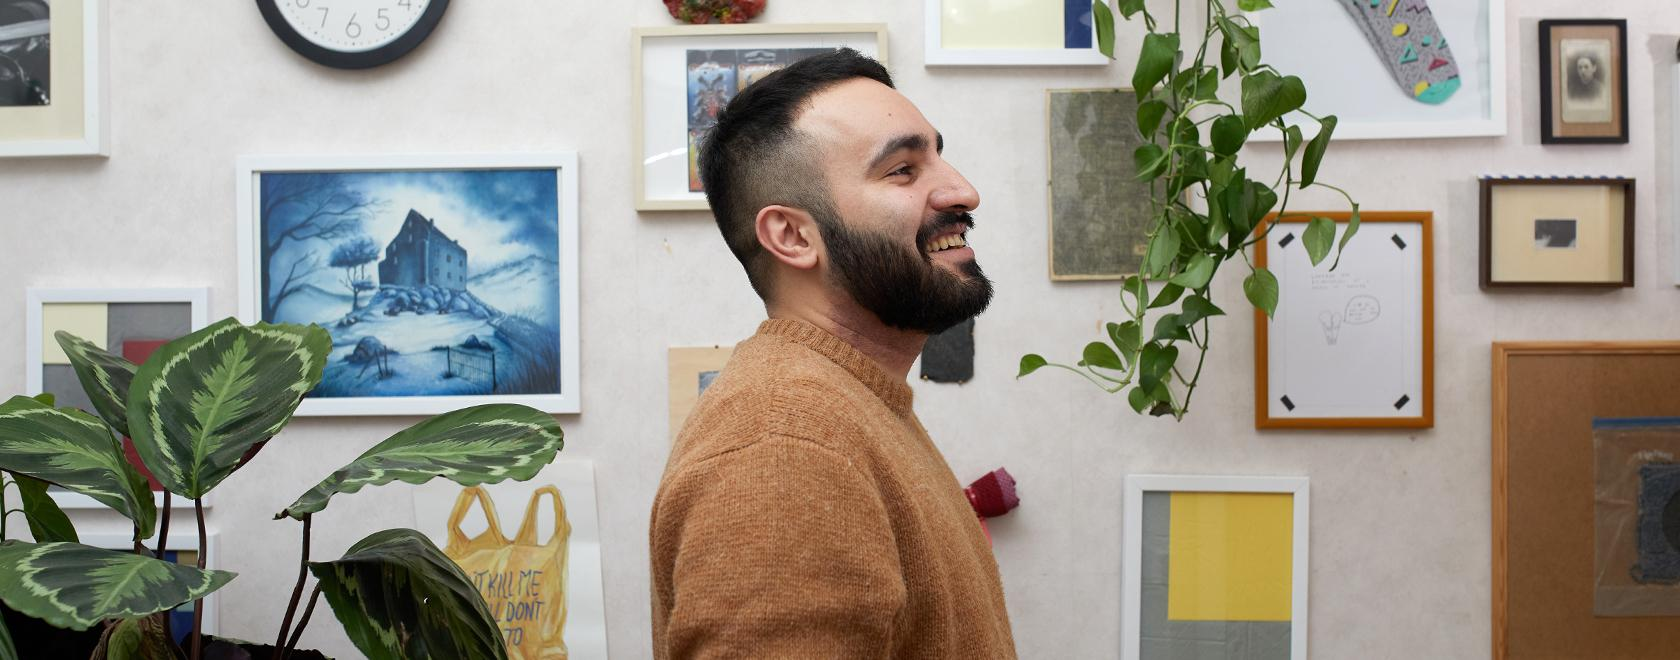 Fakharzadeh, who grew up in the north of Iran, says that he prefers to call himself an artworker to emphasise the fact that being an artist is work. Picture: Laura Iisalo